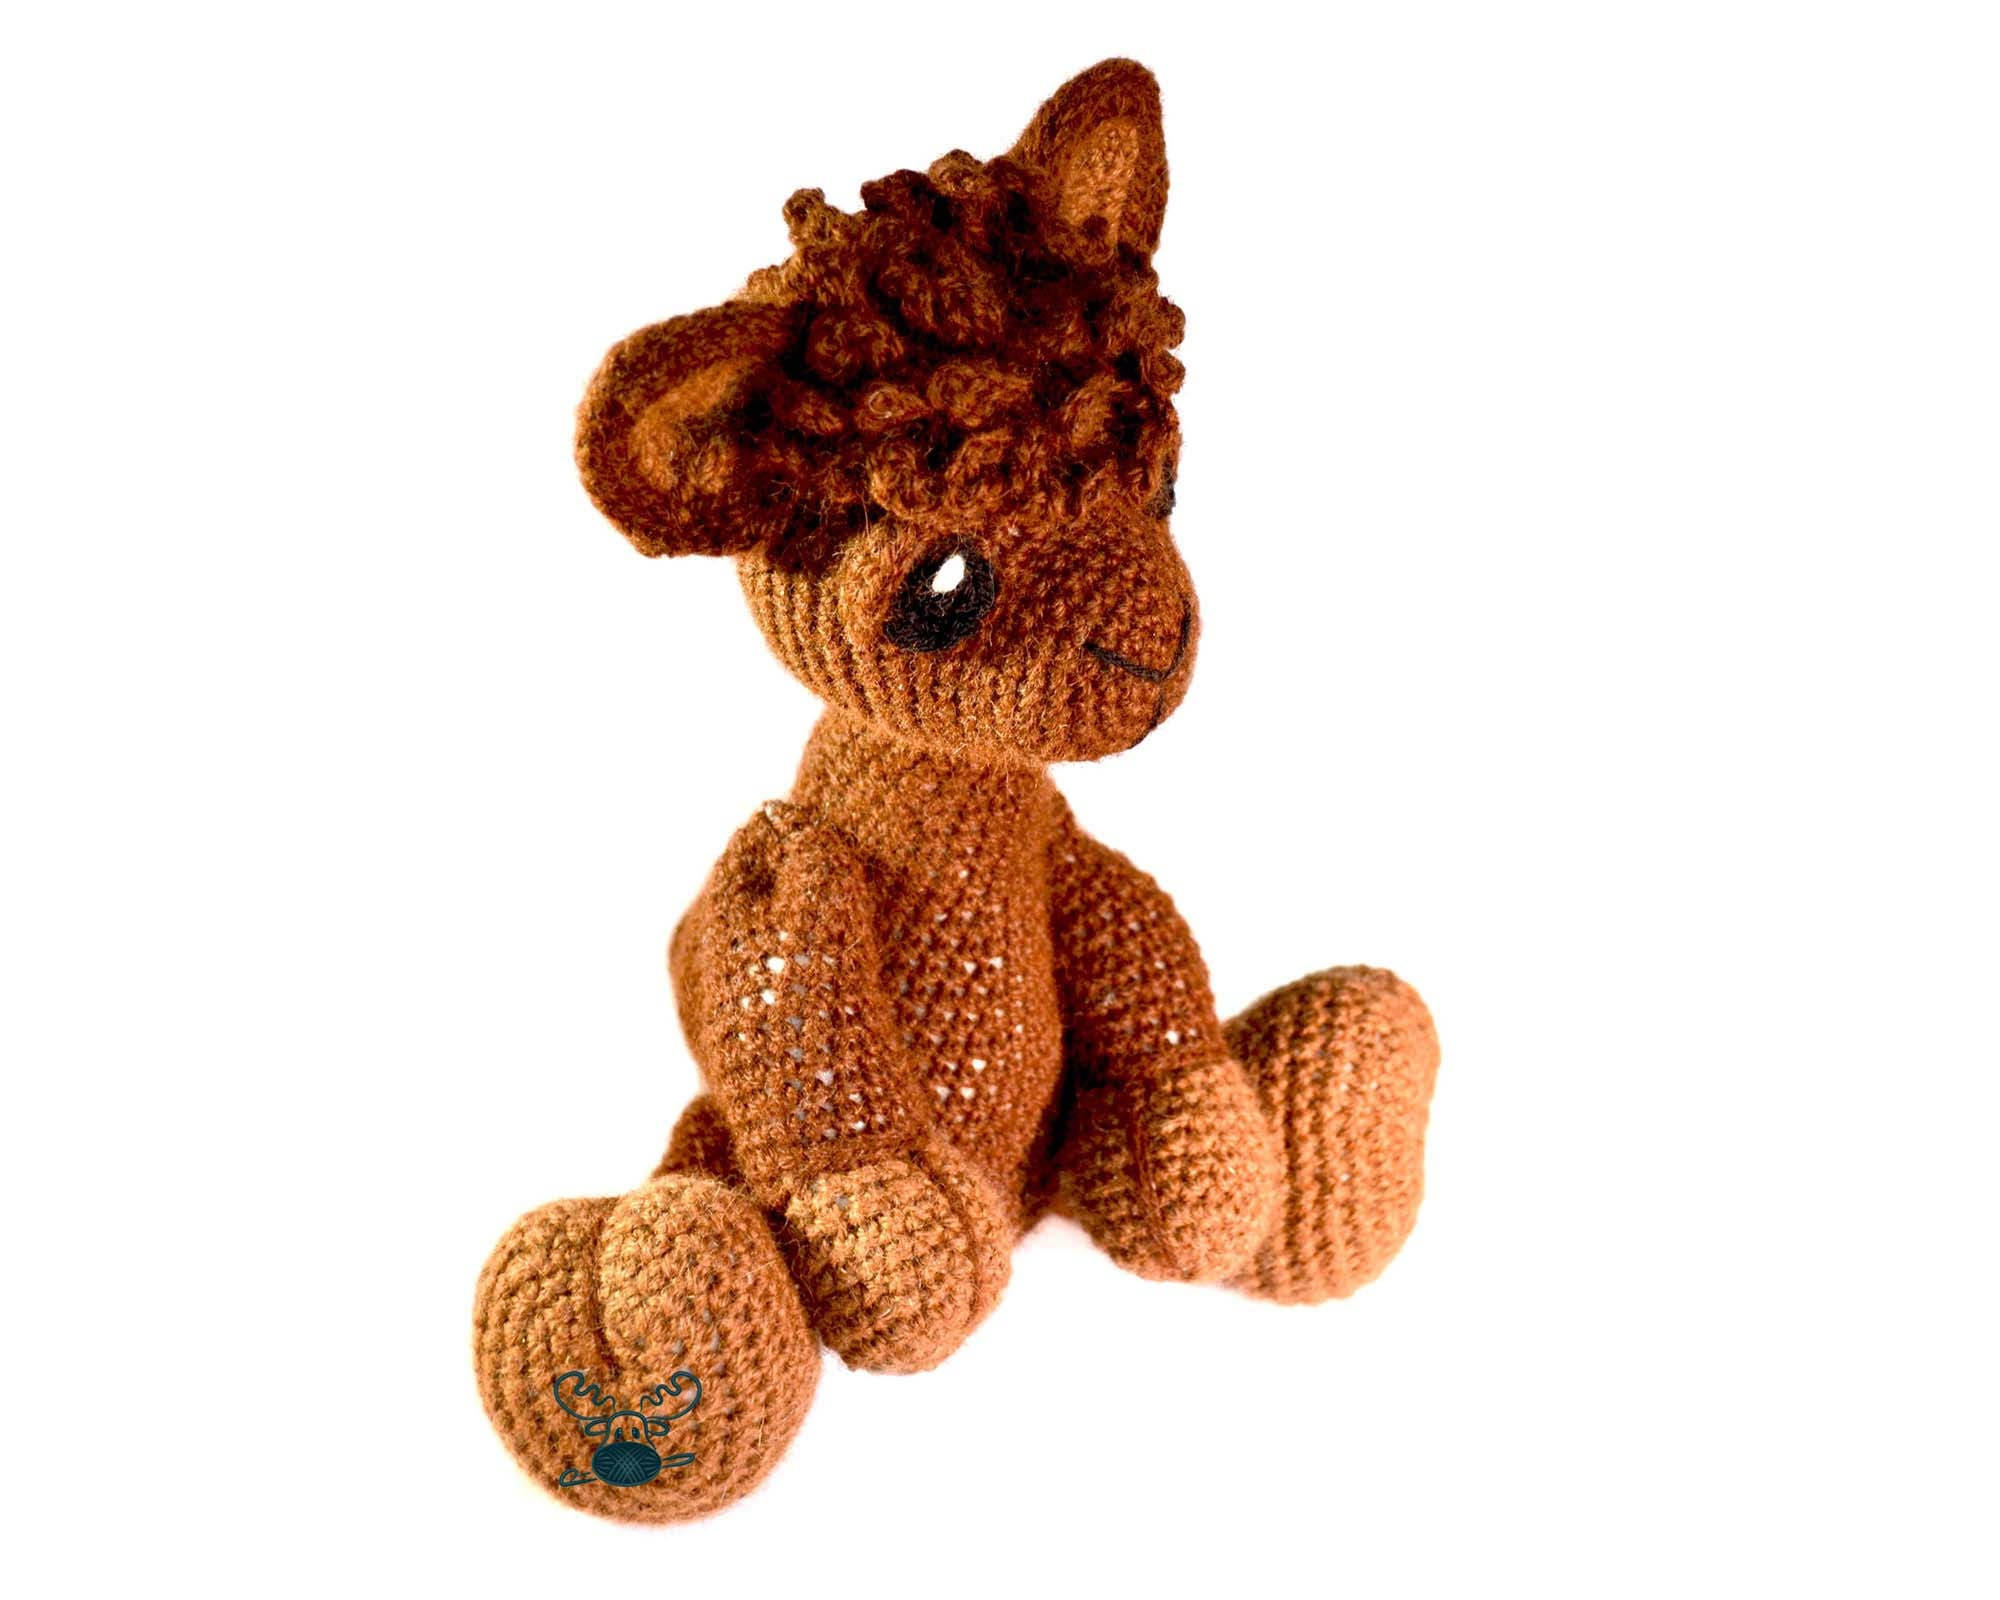 Alpaca Crochet Amigurumi : Alpaca amigurumi crochet pattern pdf instant download alfie from